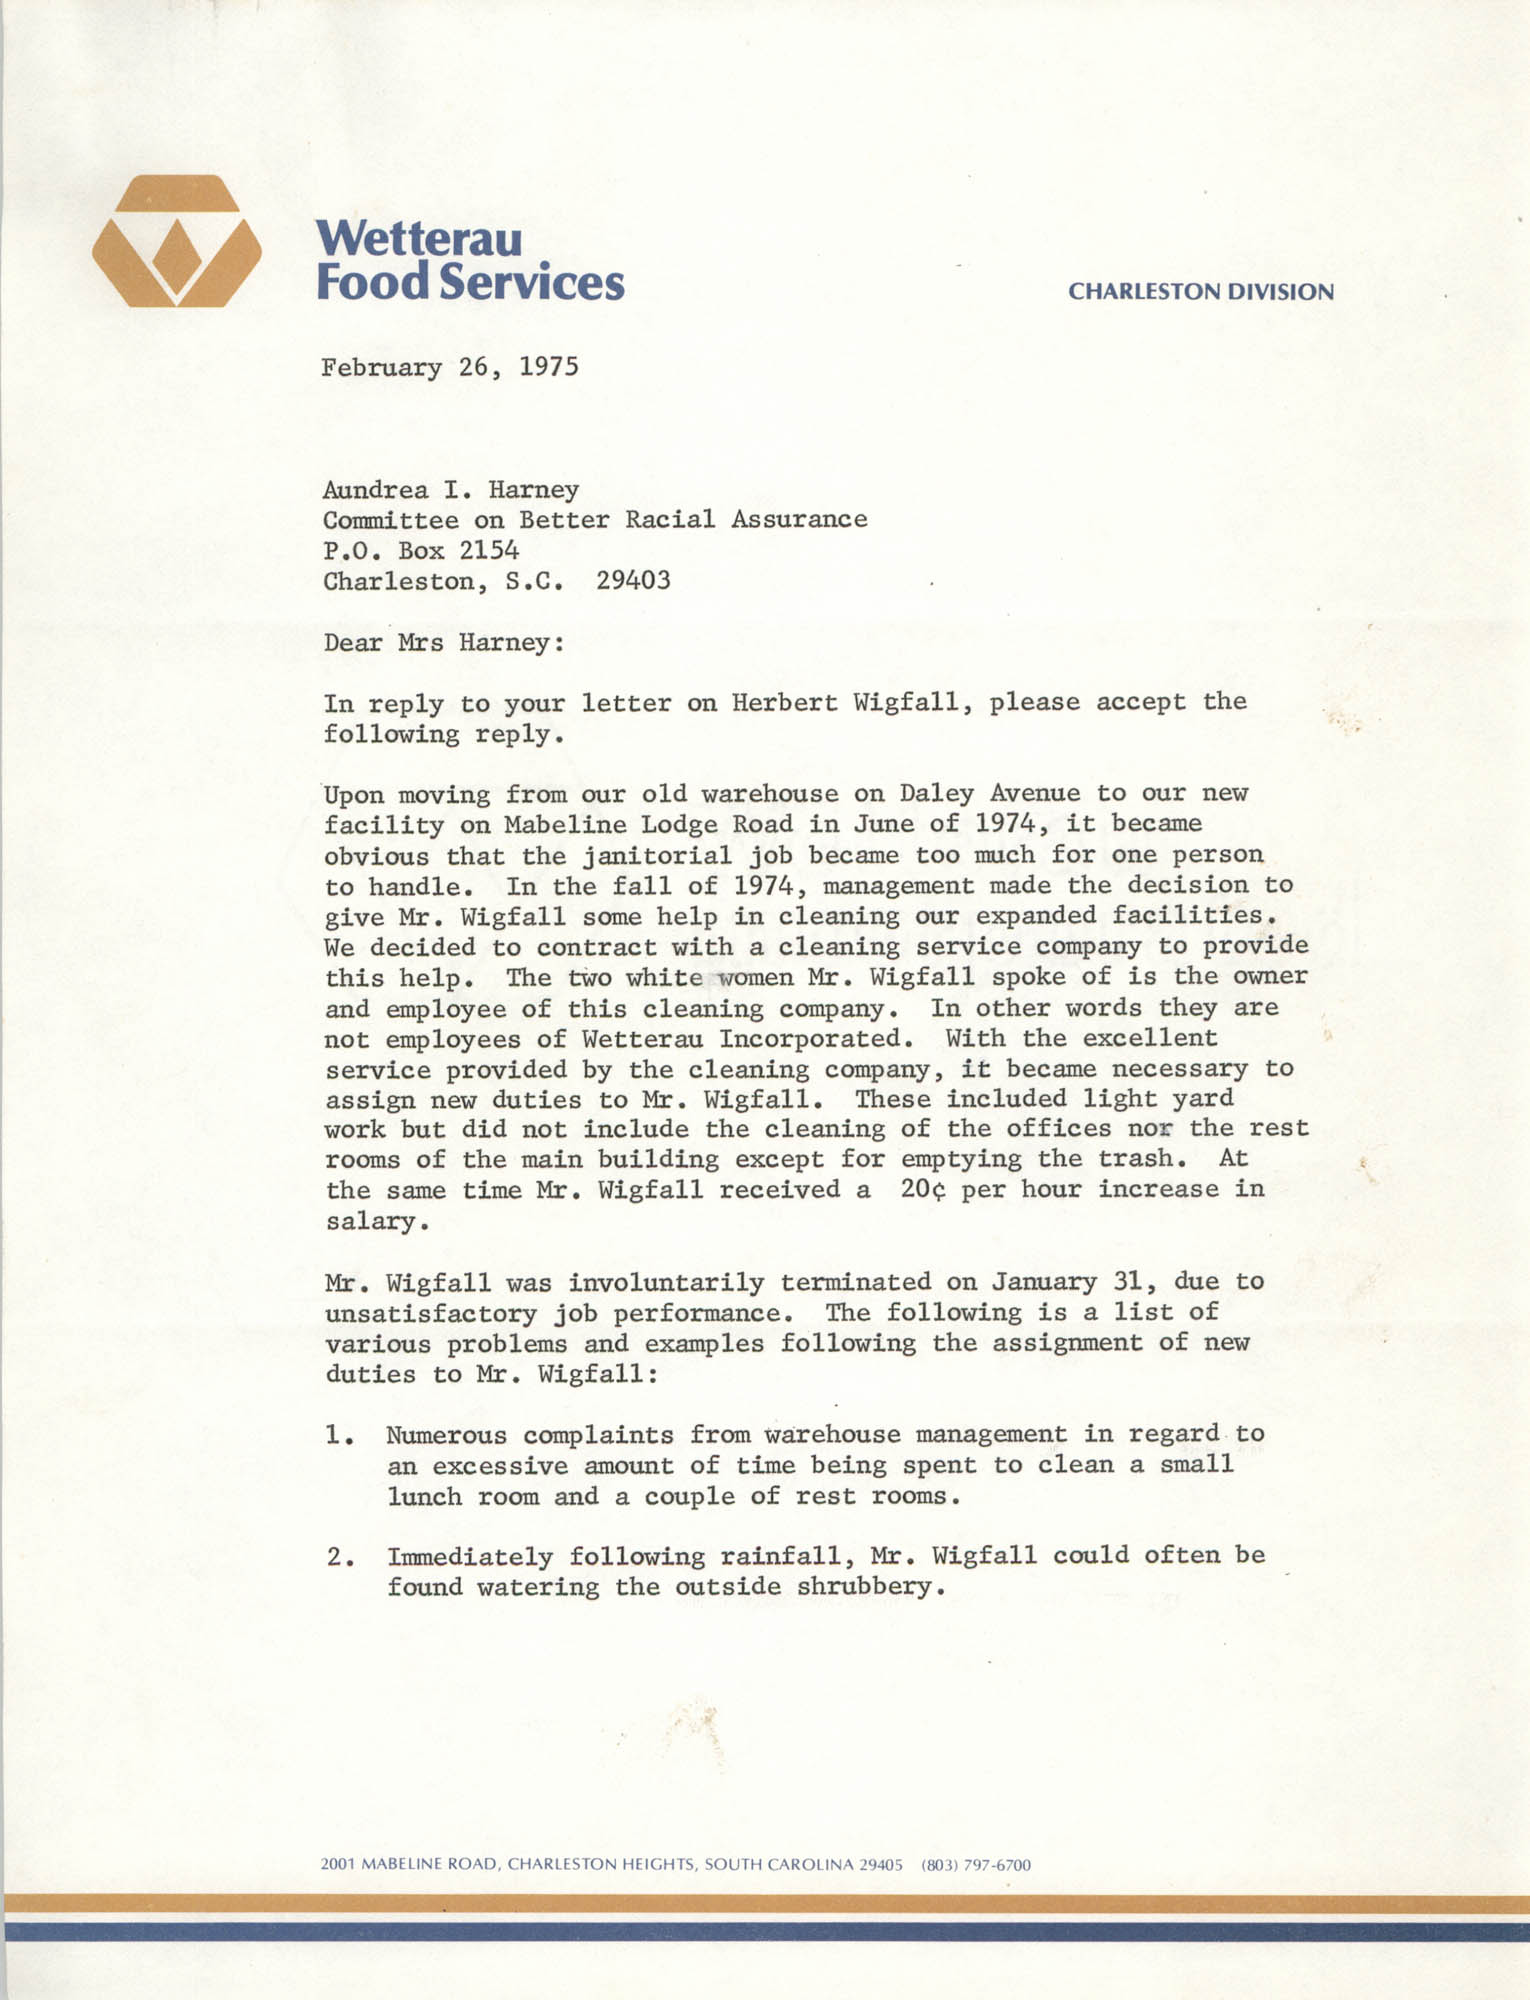 Letter from Darrell Bourne to Aundrea I. Harney, February 26, 1975